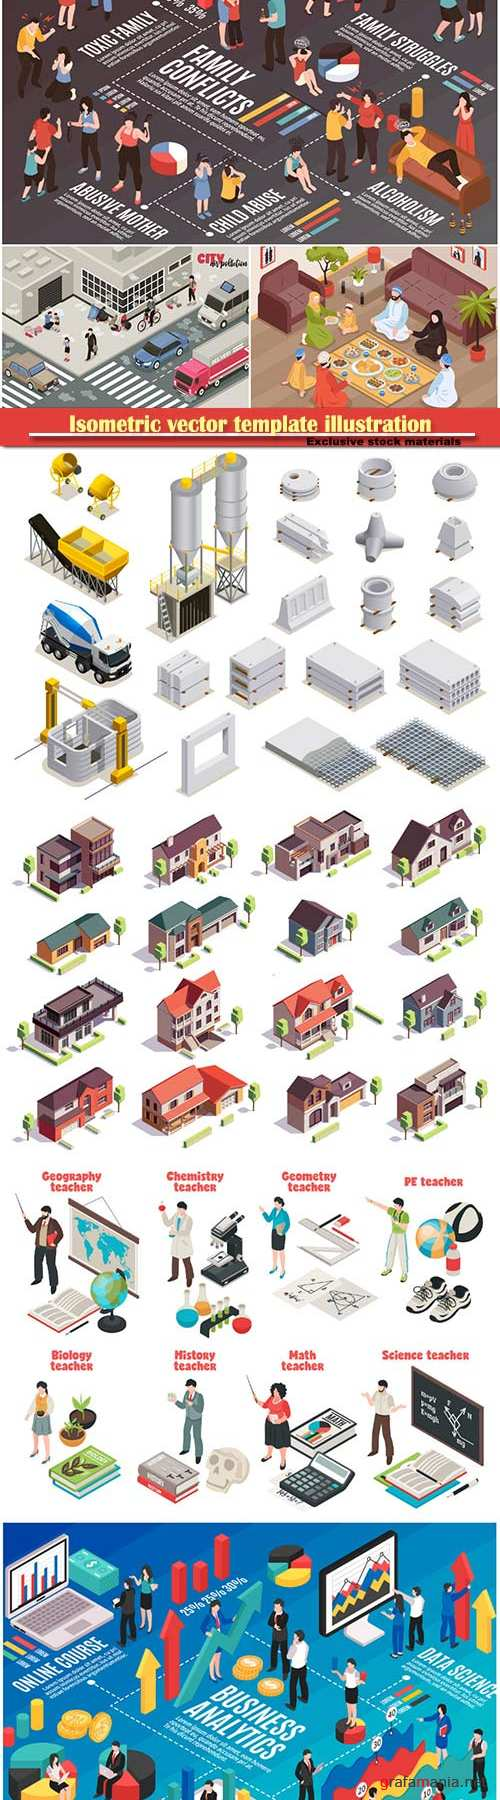 Isometric vector template illustration # 6